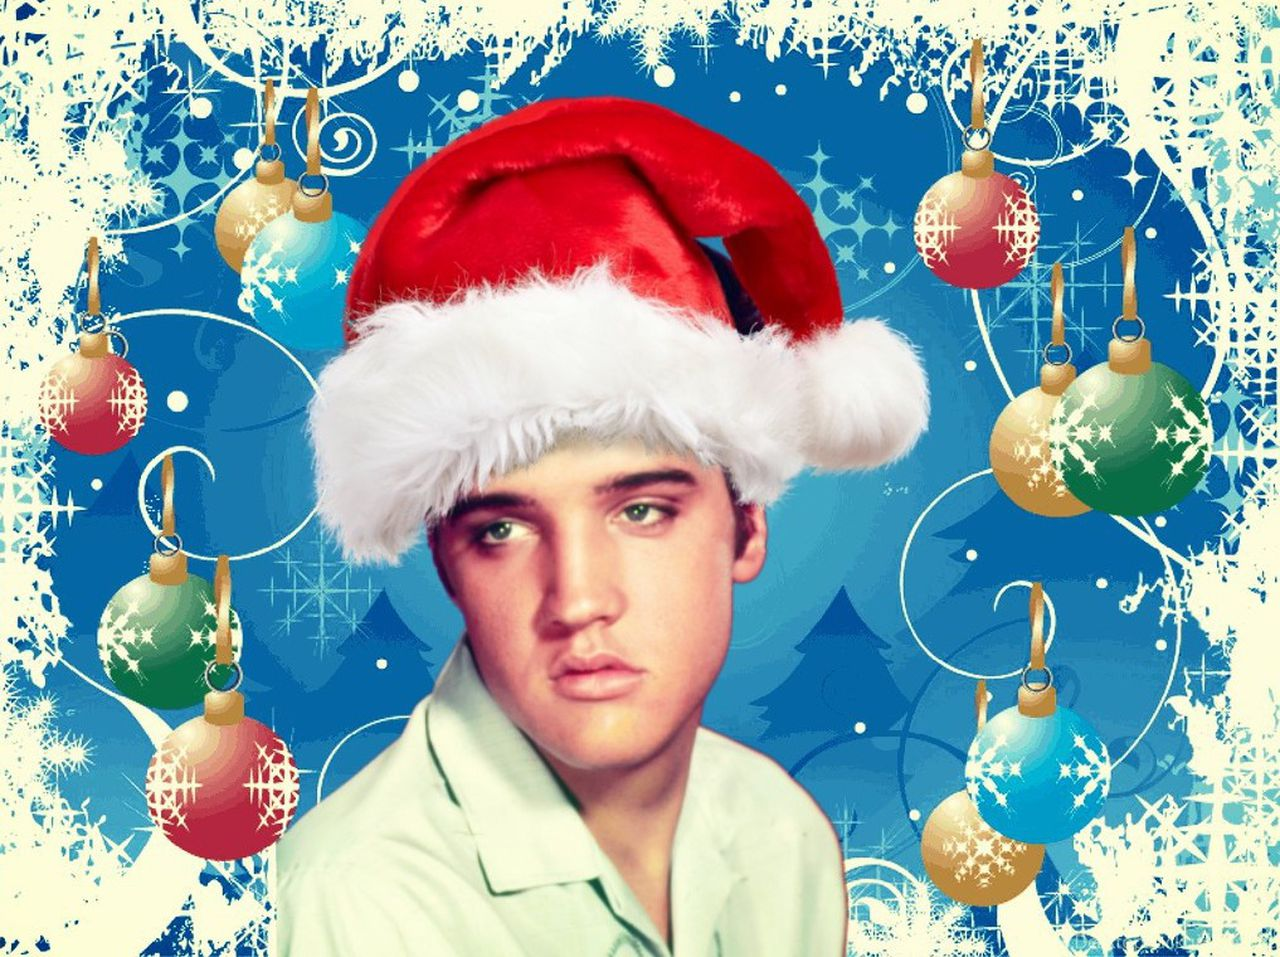 50 greatest Christmas songs by Rock and Roll Hall of Famers